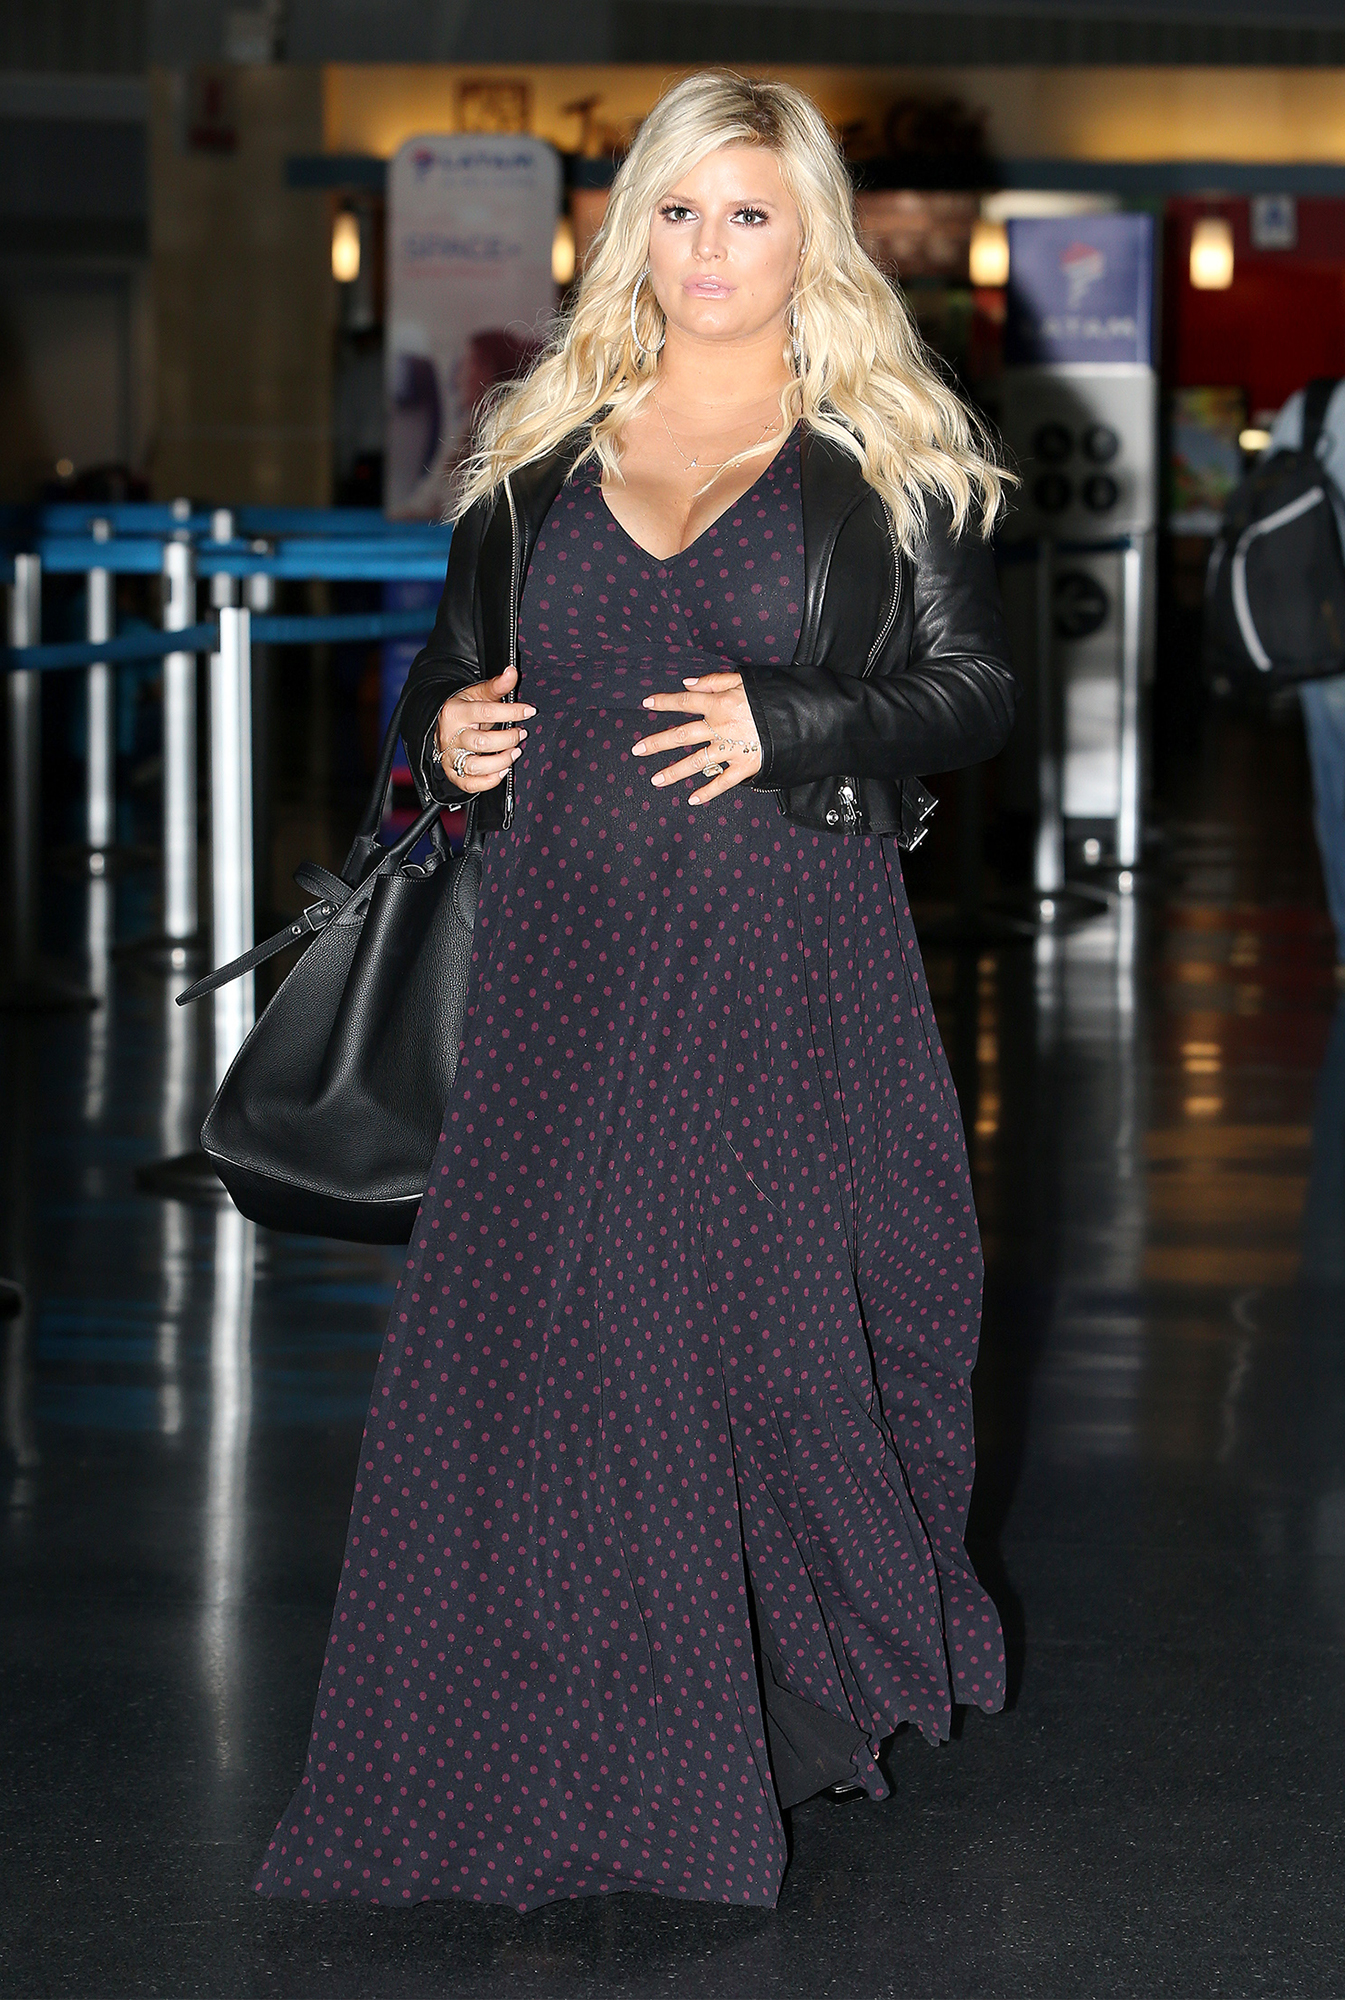 EXCLUSIVE: Jessica Simpson is Spotted Holding Her Baby Bump While Walking Through JFK Airport in New York City.